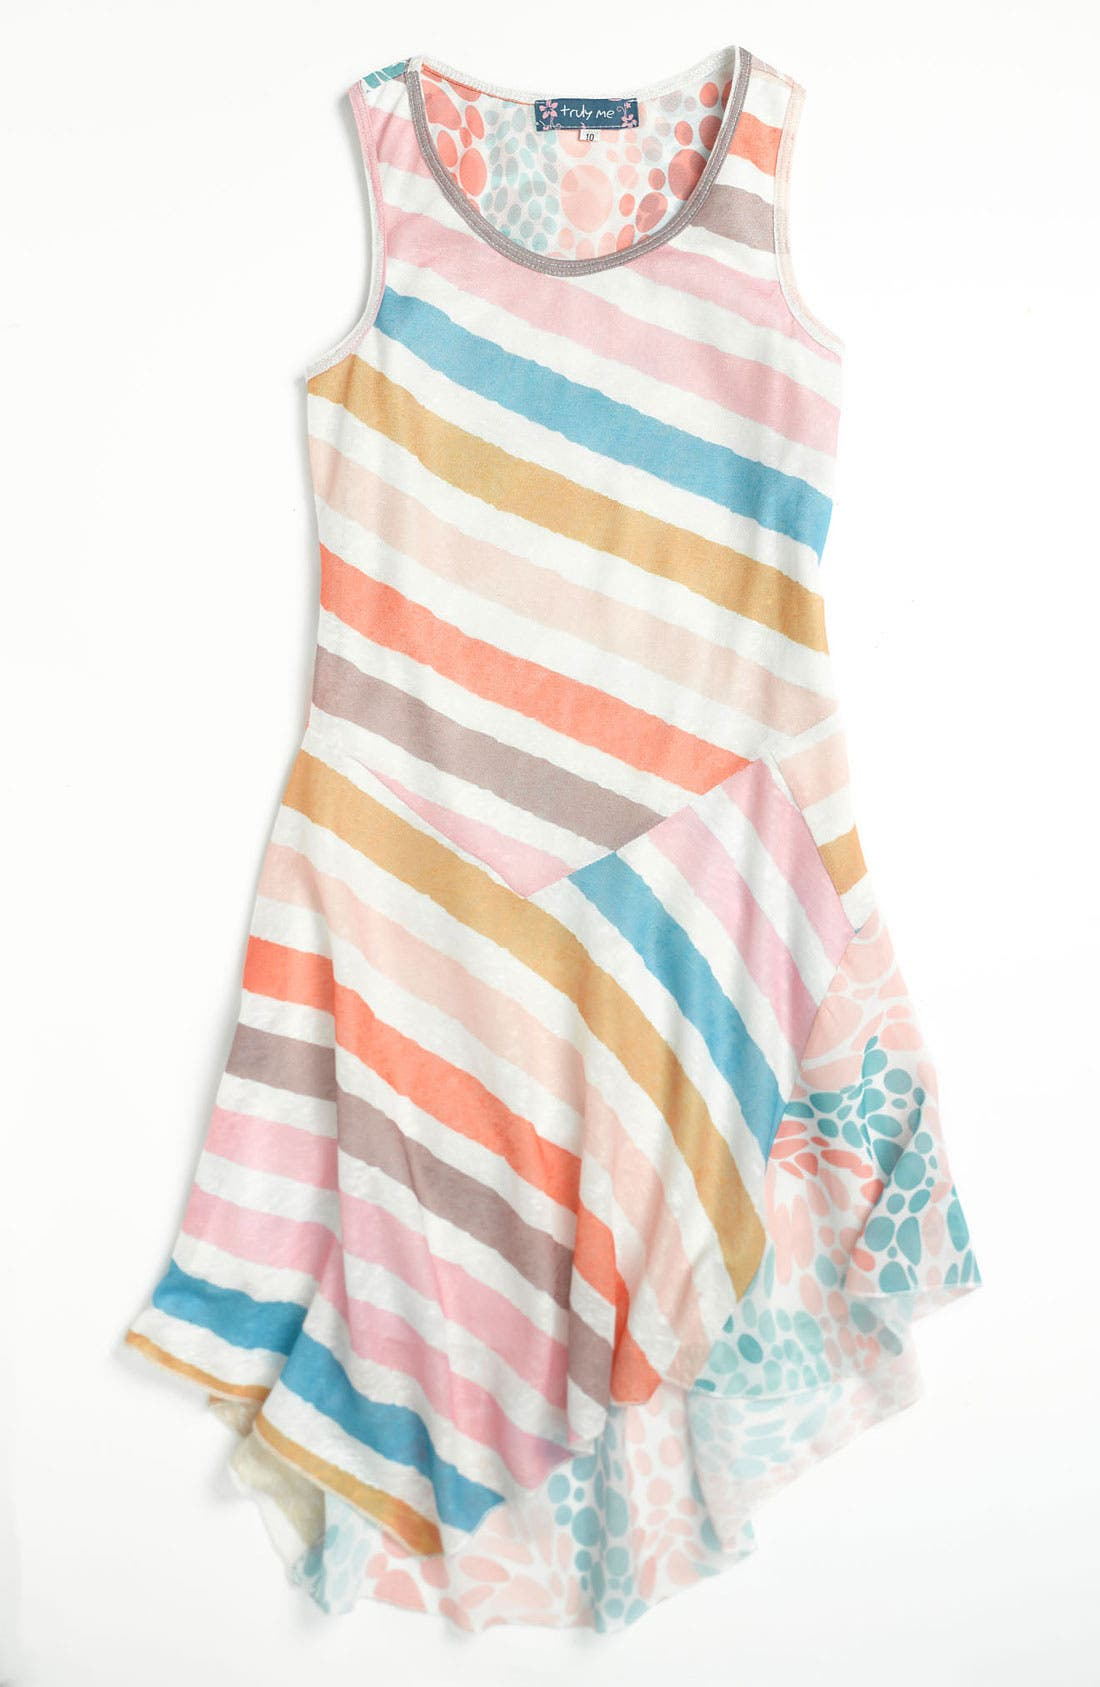 Alternate Image 1 Selected - Truly Me Mixed Print Dress (Little Girls & Big Girls)